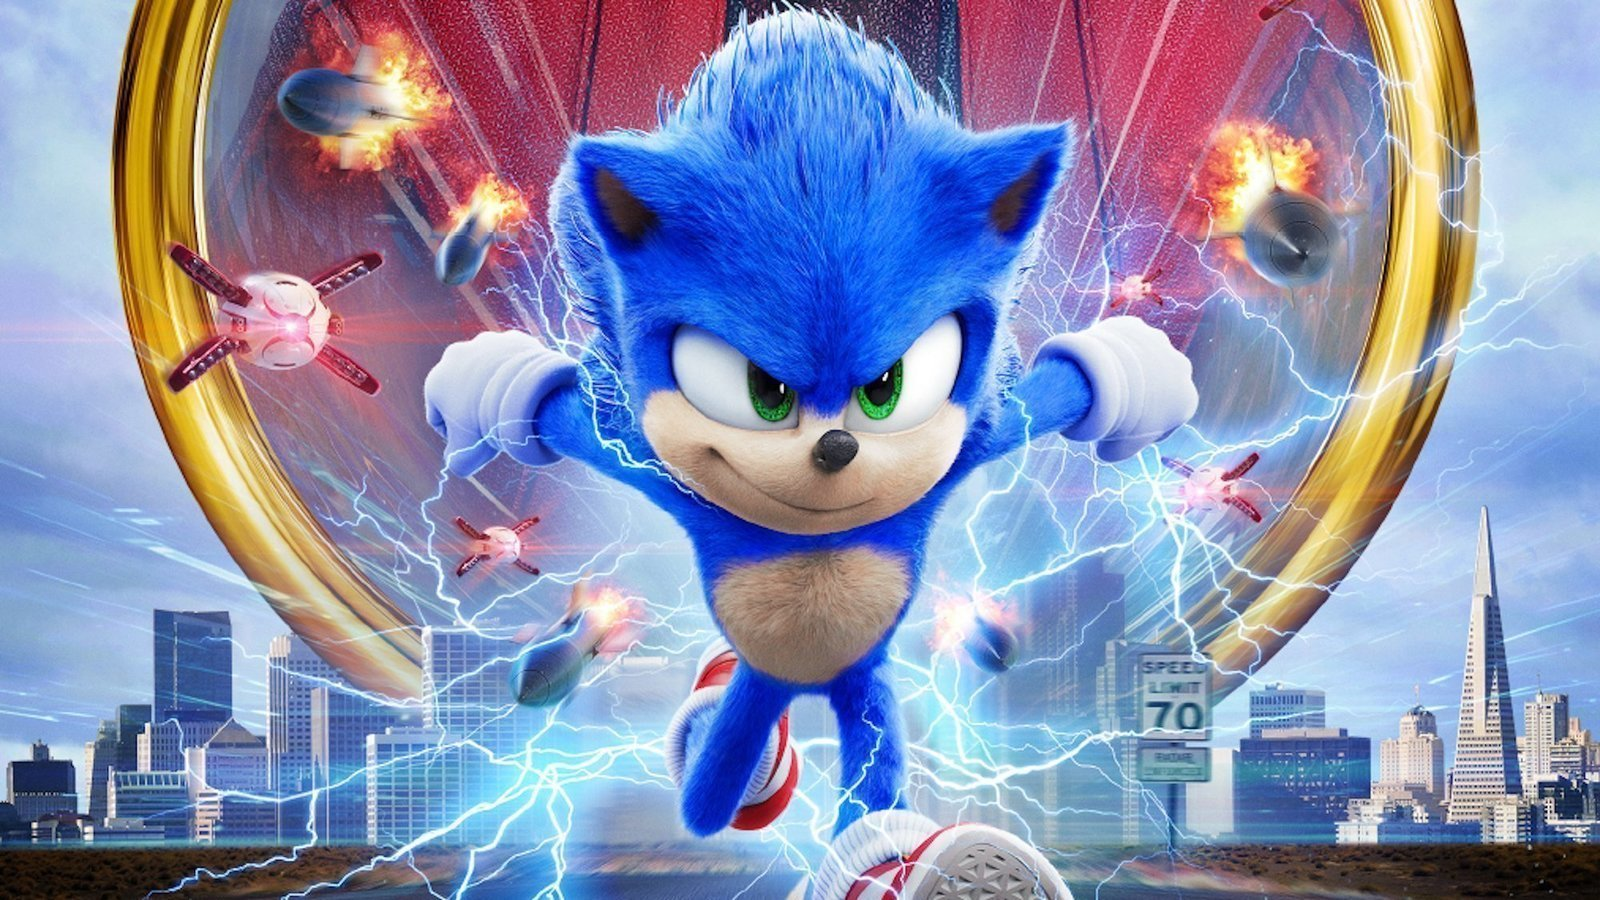 Petition Watch Sonic The Hedgehog 4khd 2020 Sonic The Hedgehog Full Movies Change Org